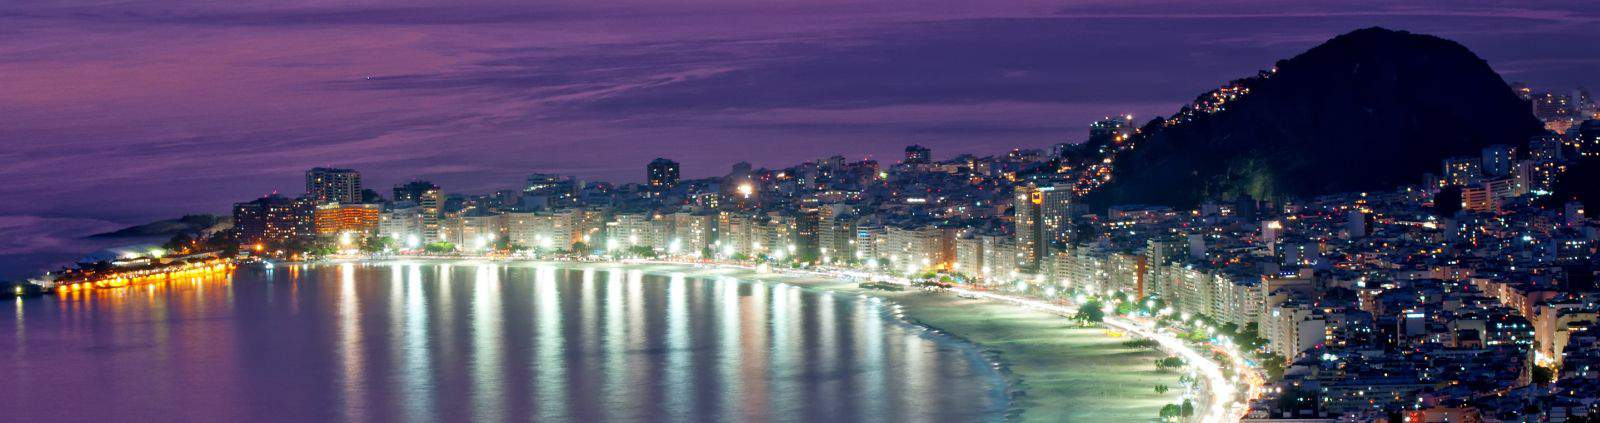 Copacabana_night